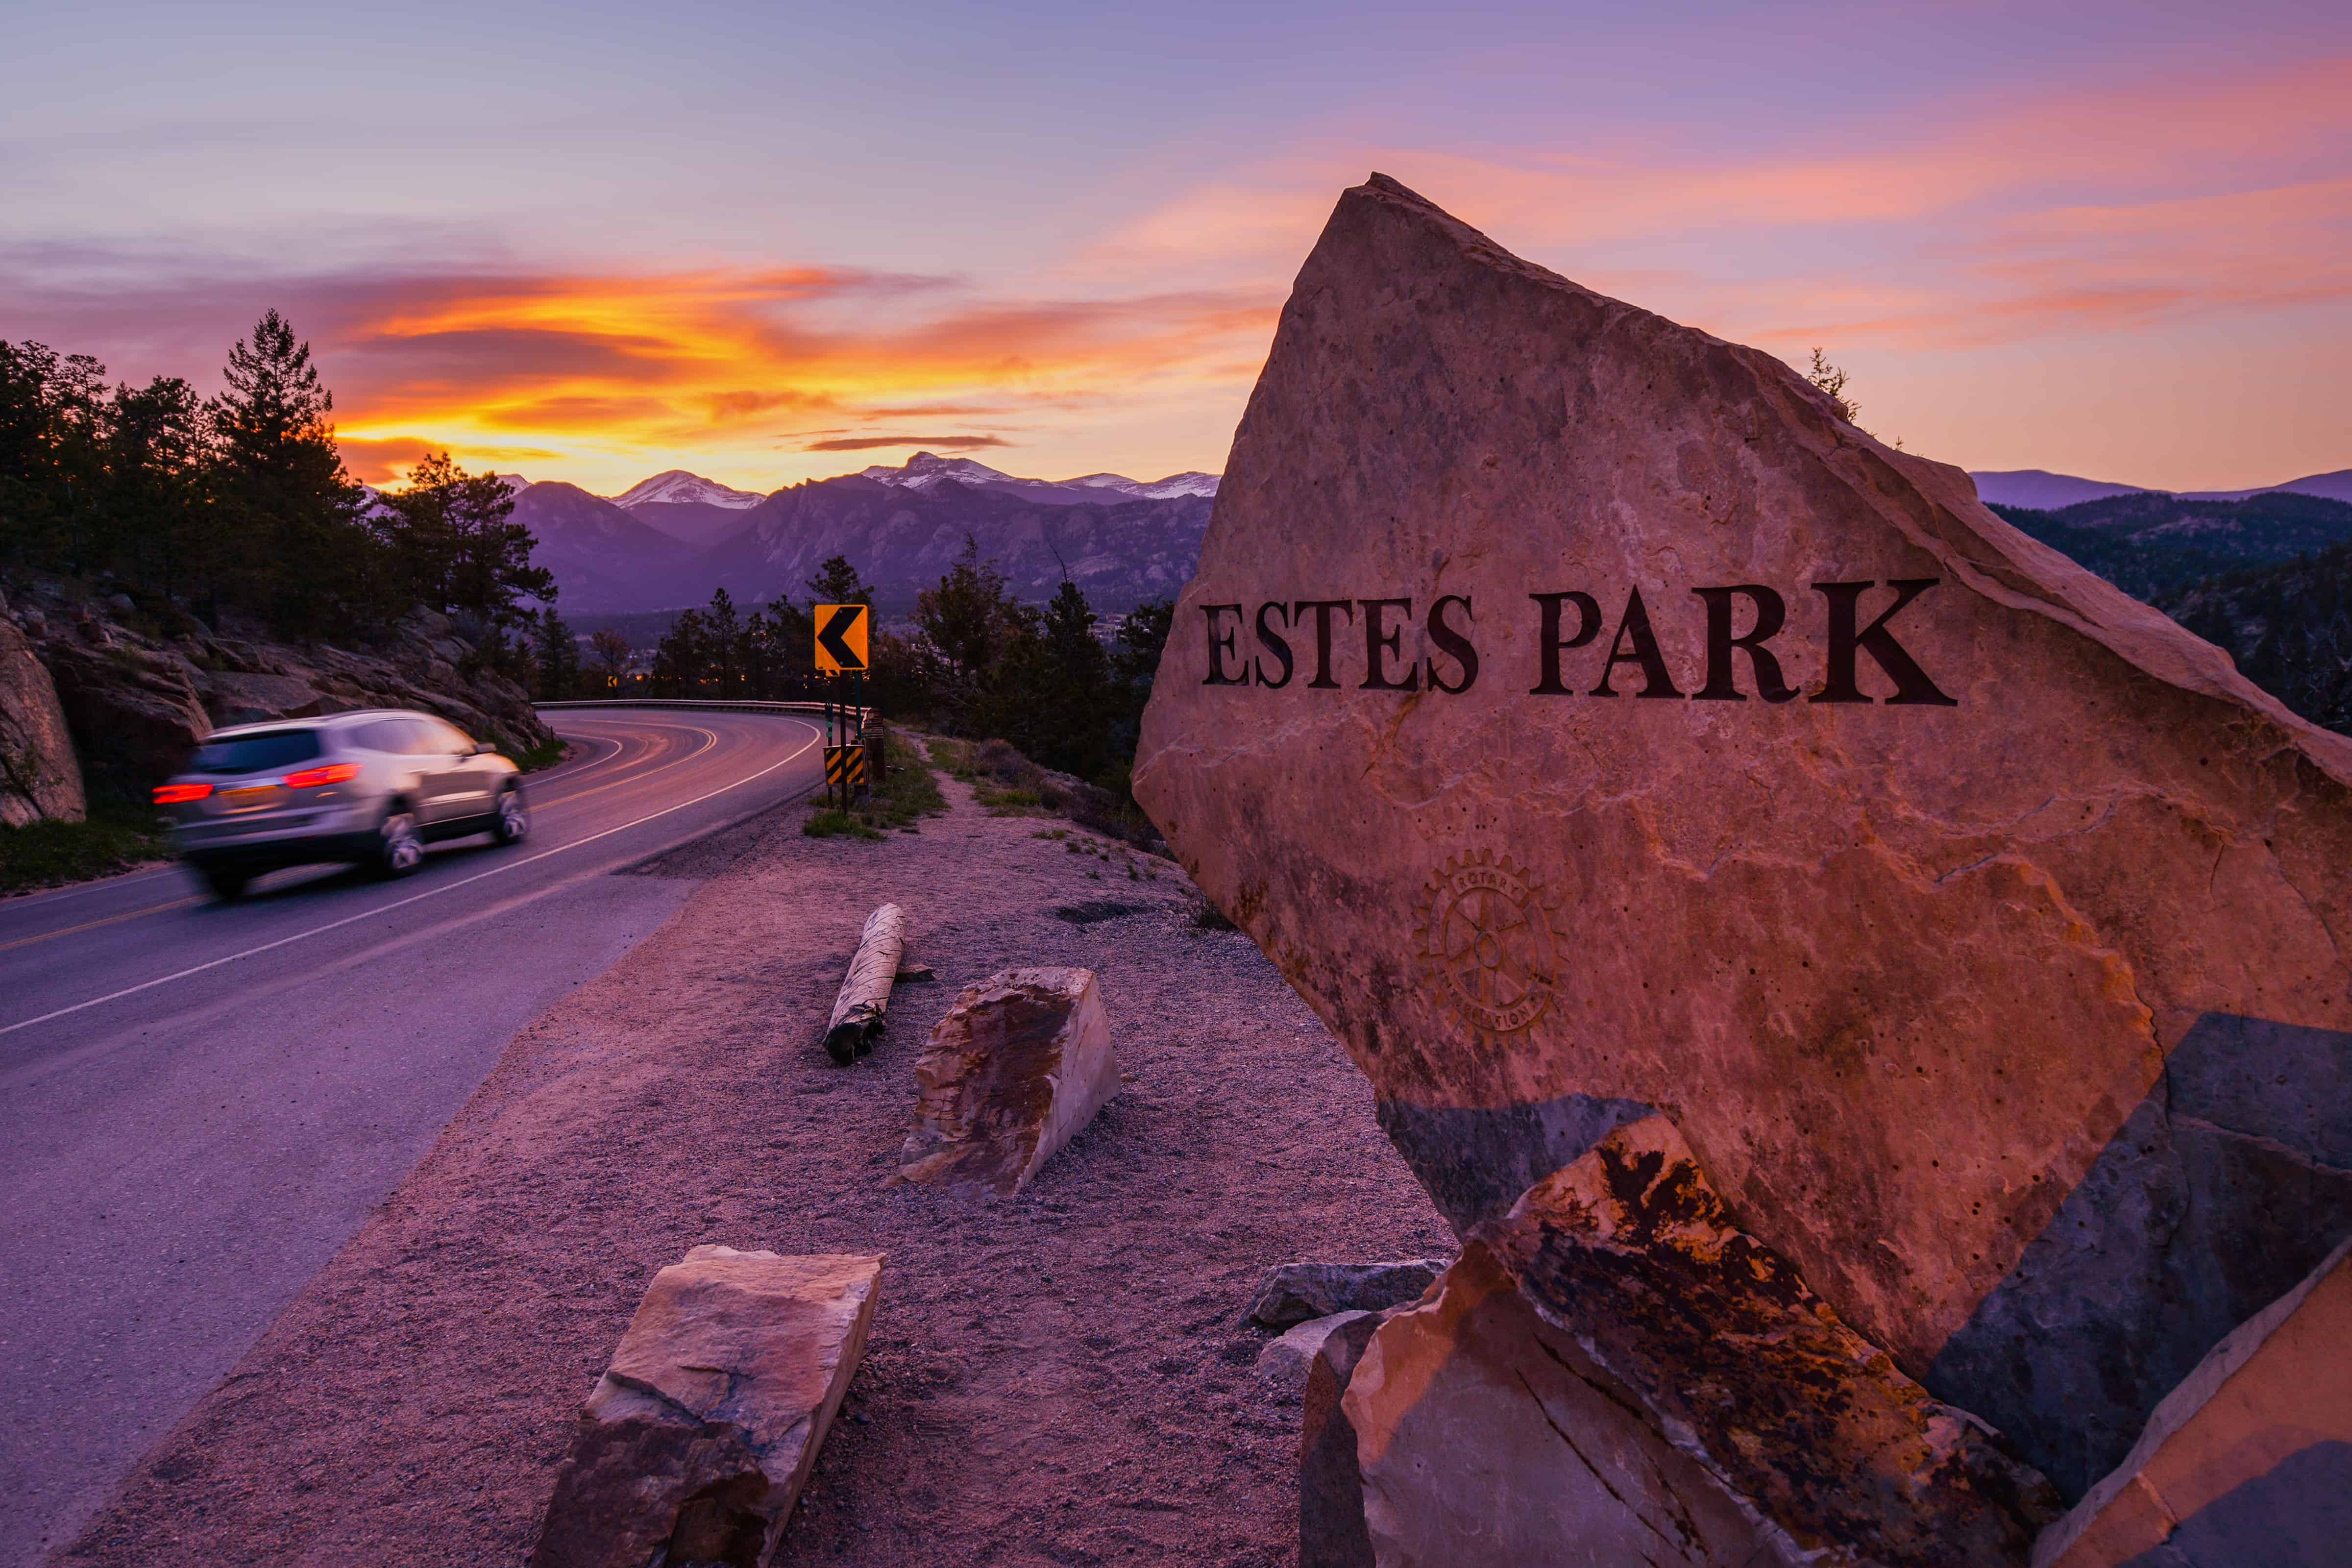 Hikes Near Estes Park. Highway 36 Entrance Sign at Sunset. Estes Park, Colorado, United States